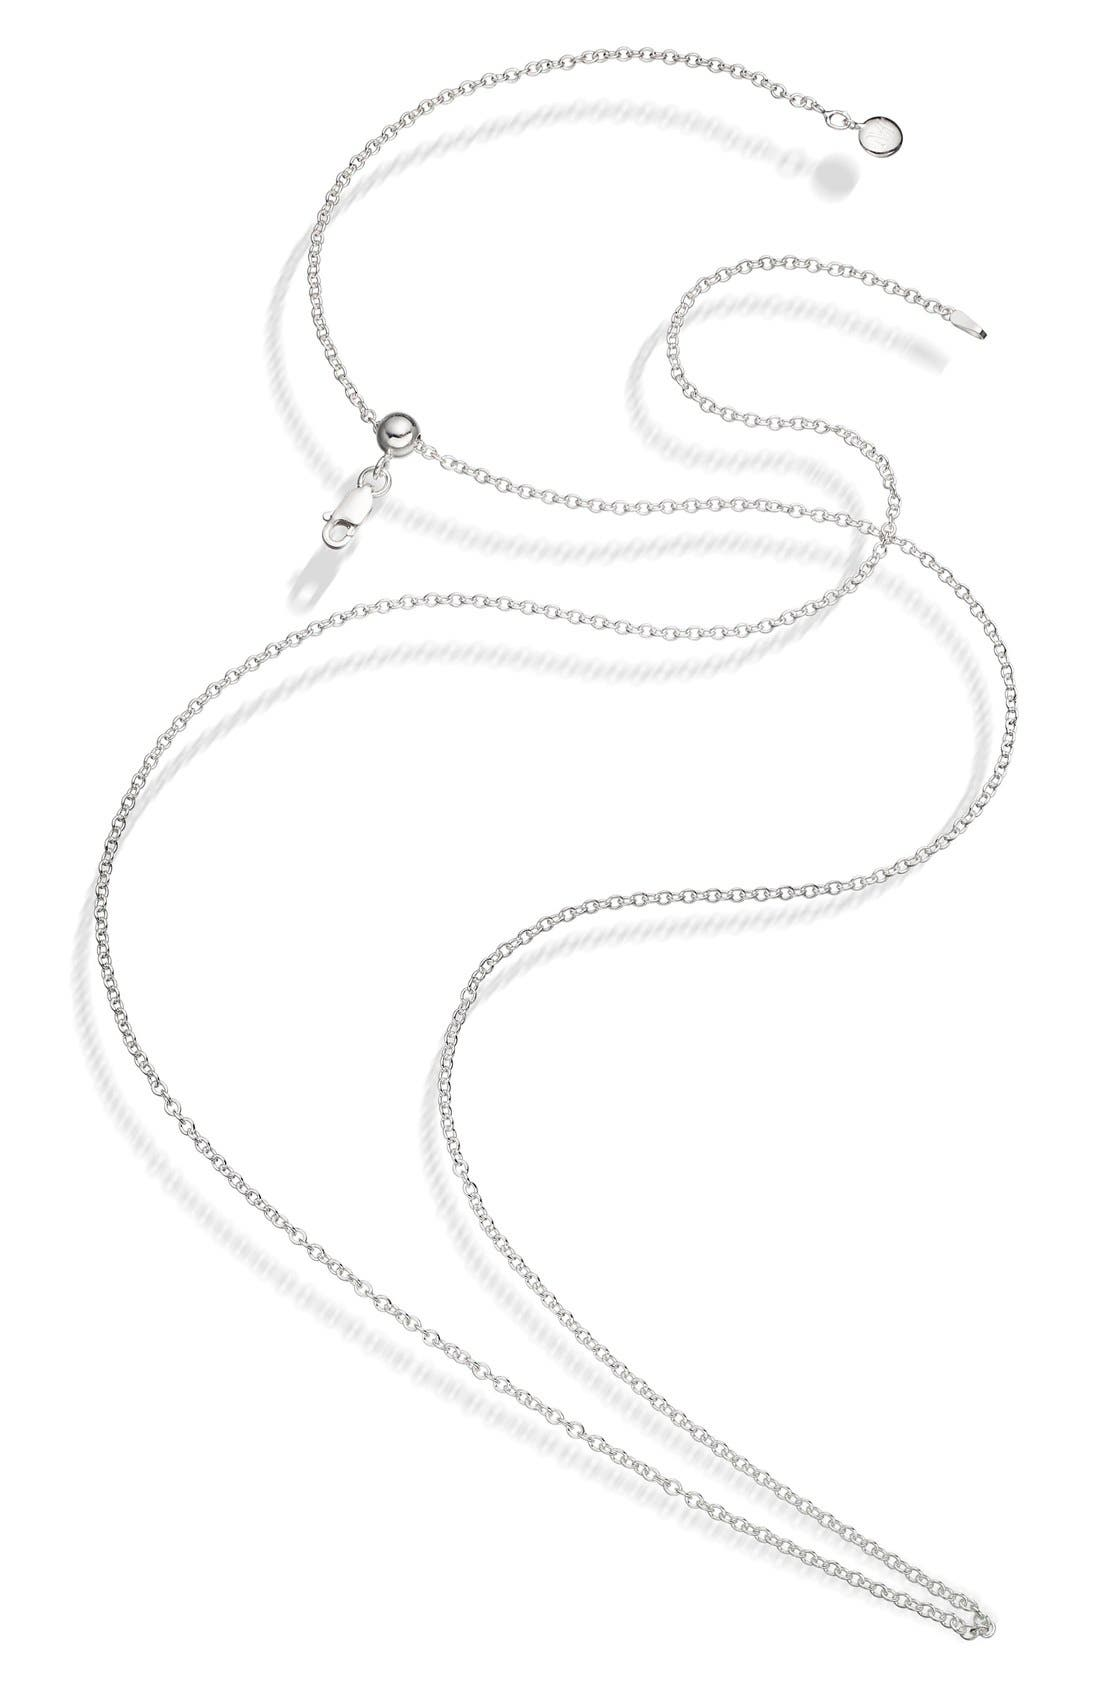 A sleek, long chain in hand-polished precious metal features a sliding bead to easily adjust it to your desired length. Pair it with your favorite pendants or layer it with other chains for a customized look. Style Name: Monica Vinader 32 Inch Adjustable Rolo Chain. Style Number: 5298449. Available in stores.